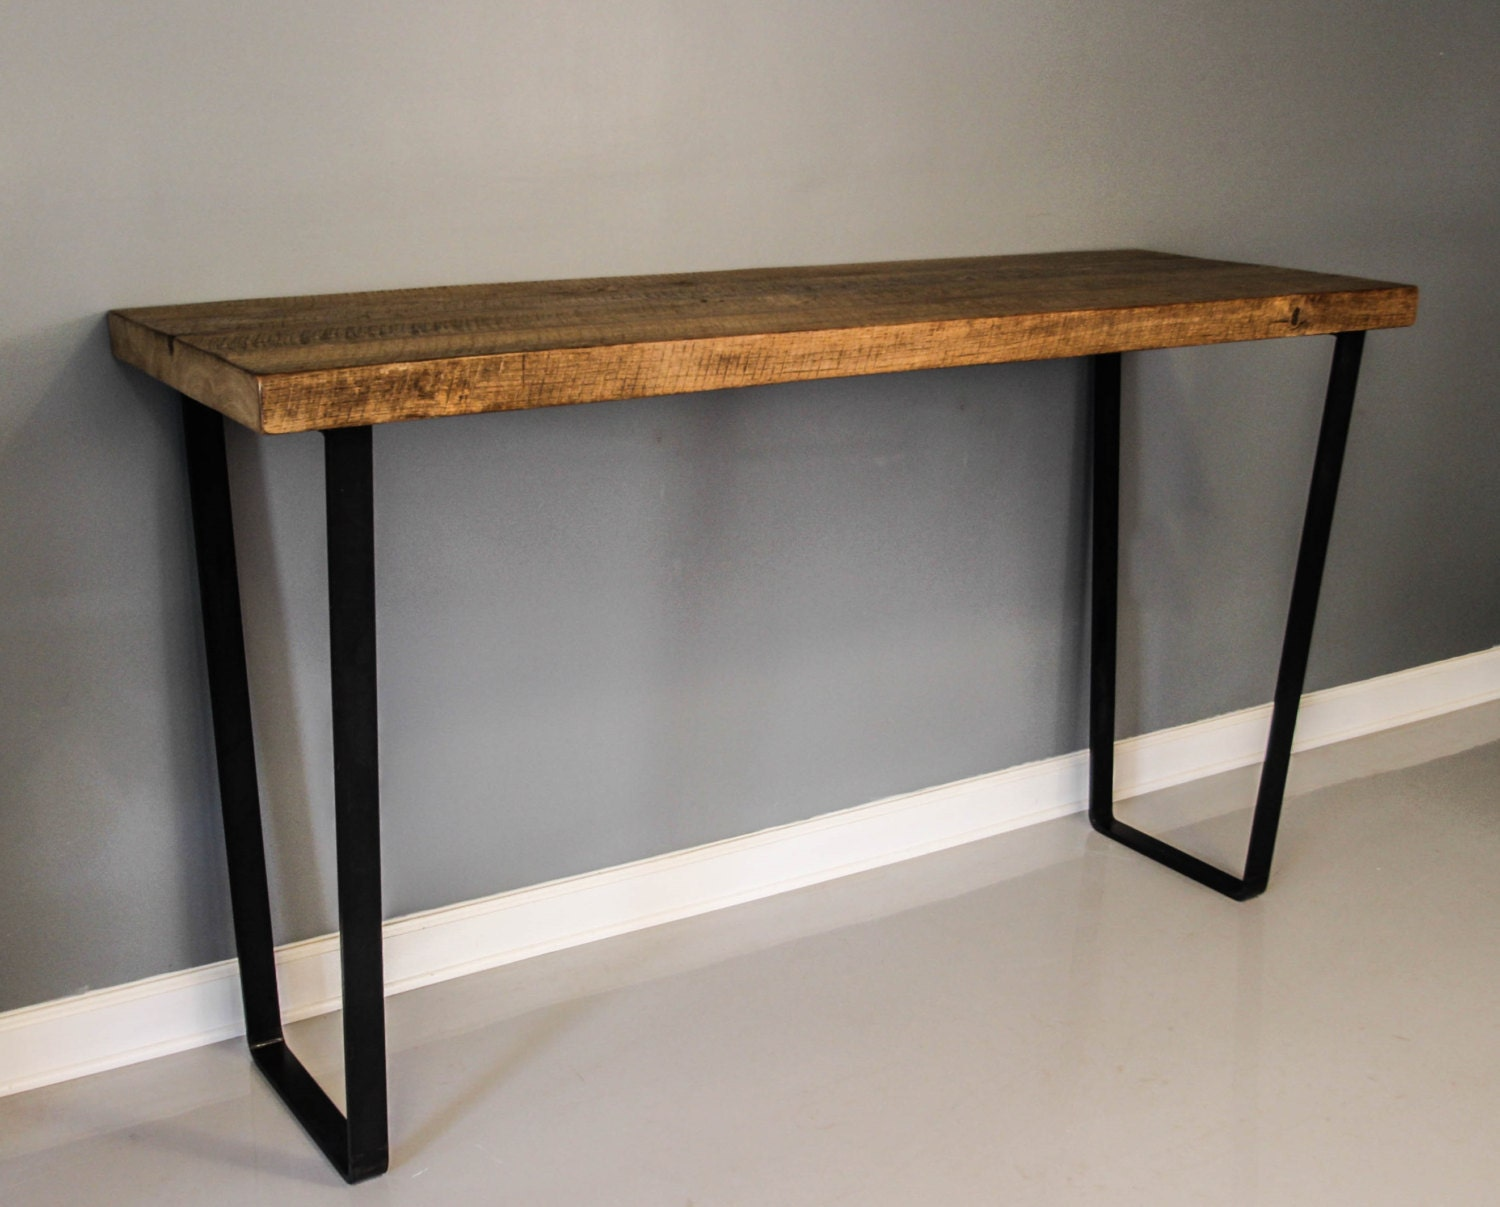 dining table steel leg table reclaimed planks solid by dendroco. Black Bedroom Furniture Sets. Home Design Ideas